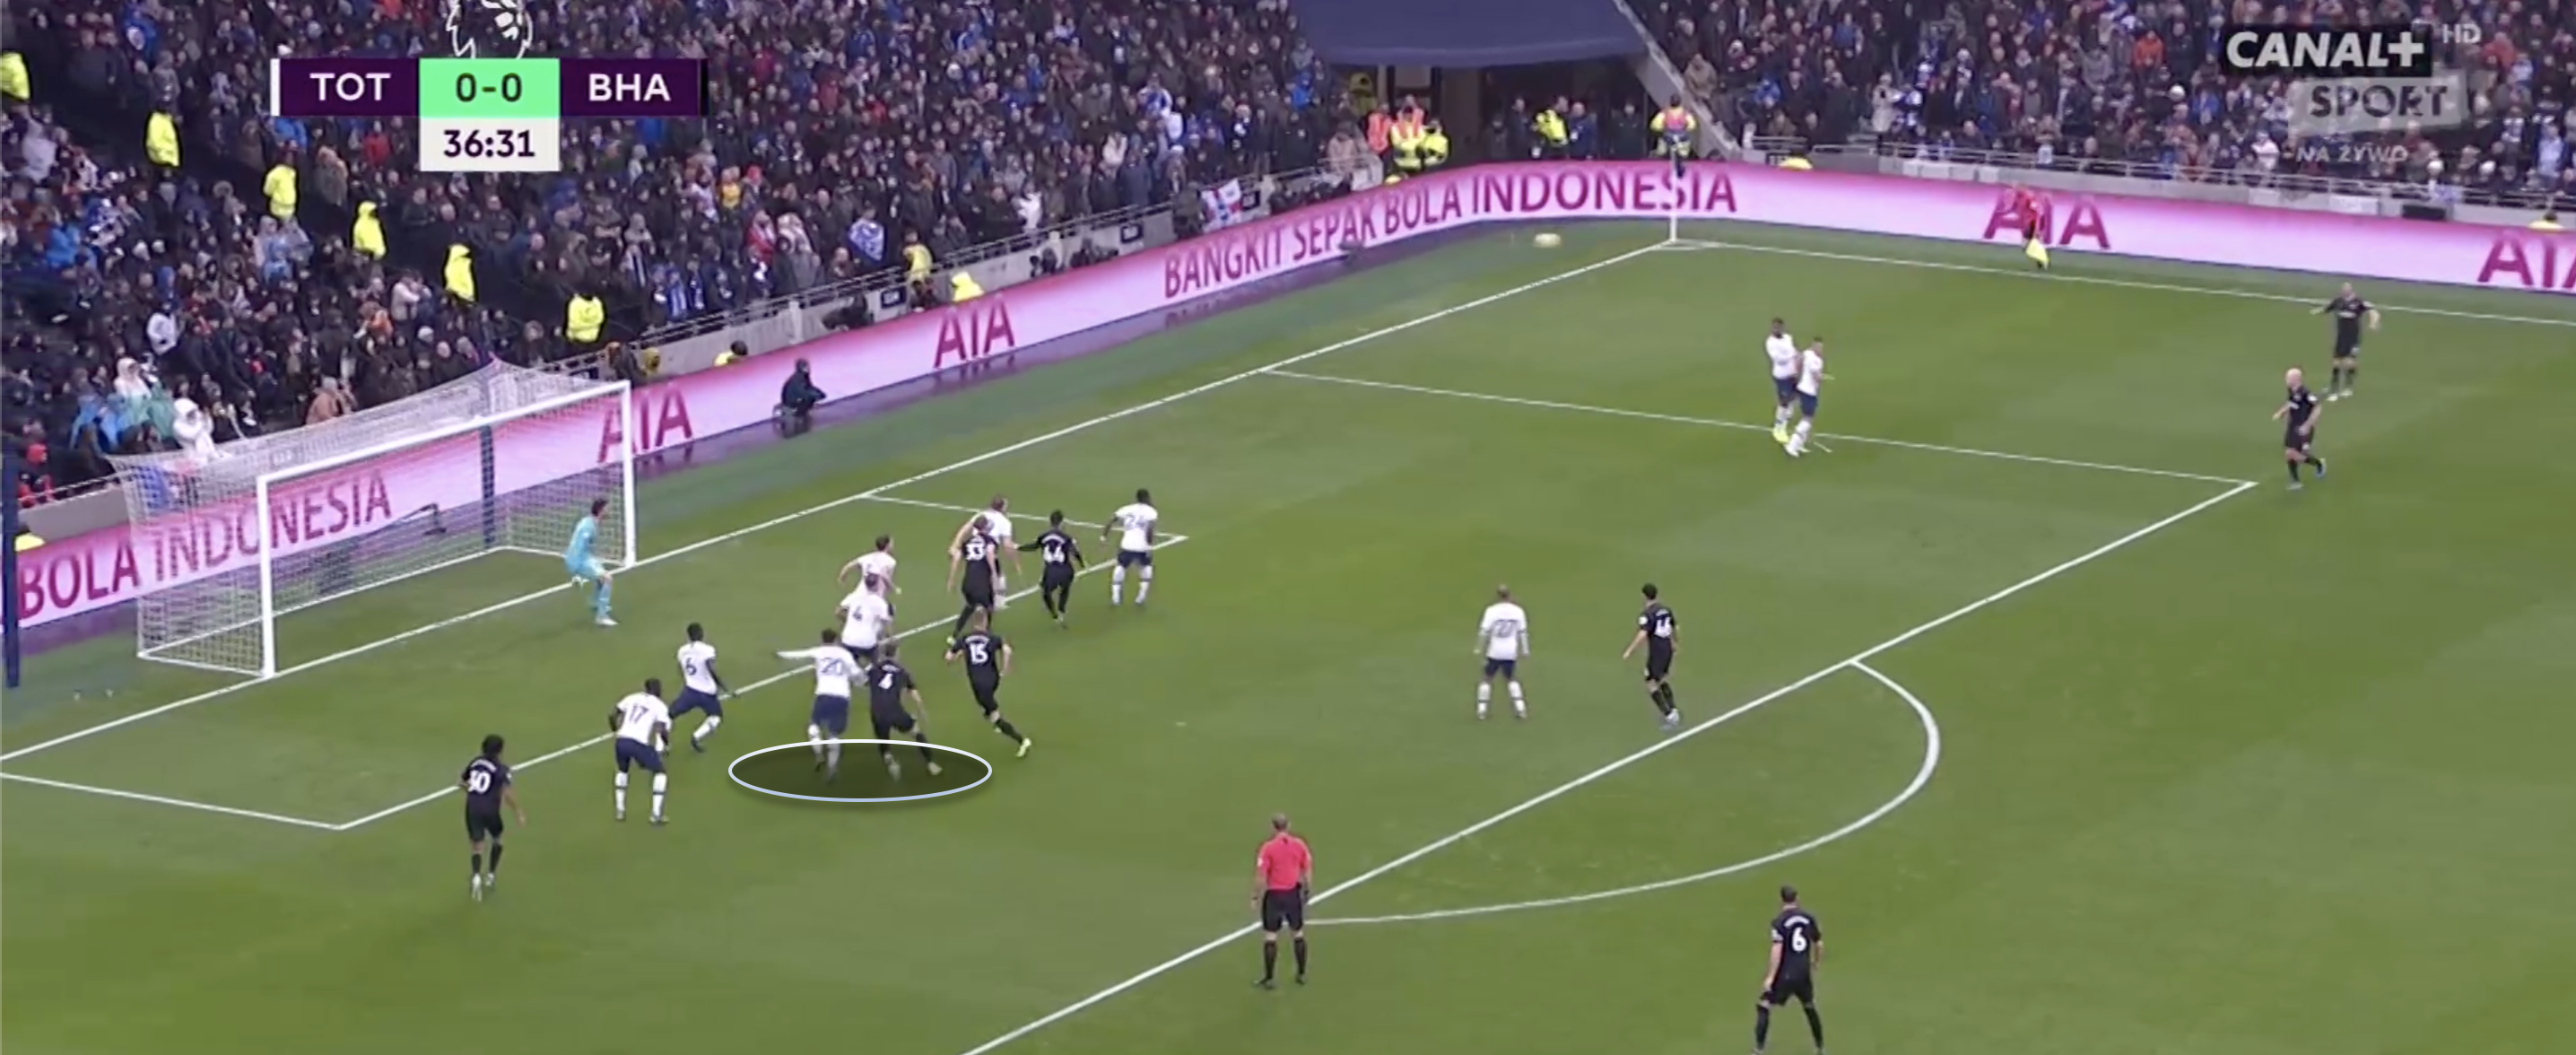 Premier League 2019/20: Tottenham Hotspur vs Brighton and Hove Albion - tactical analysis tactics